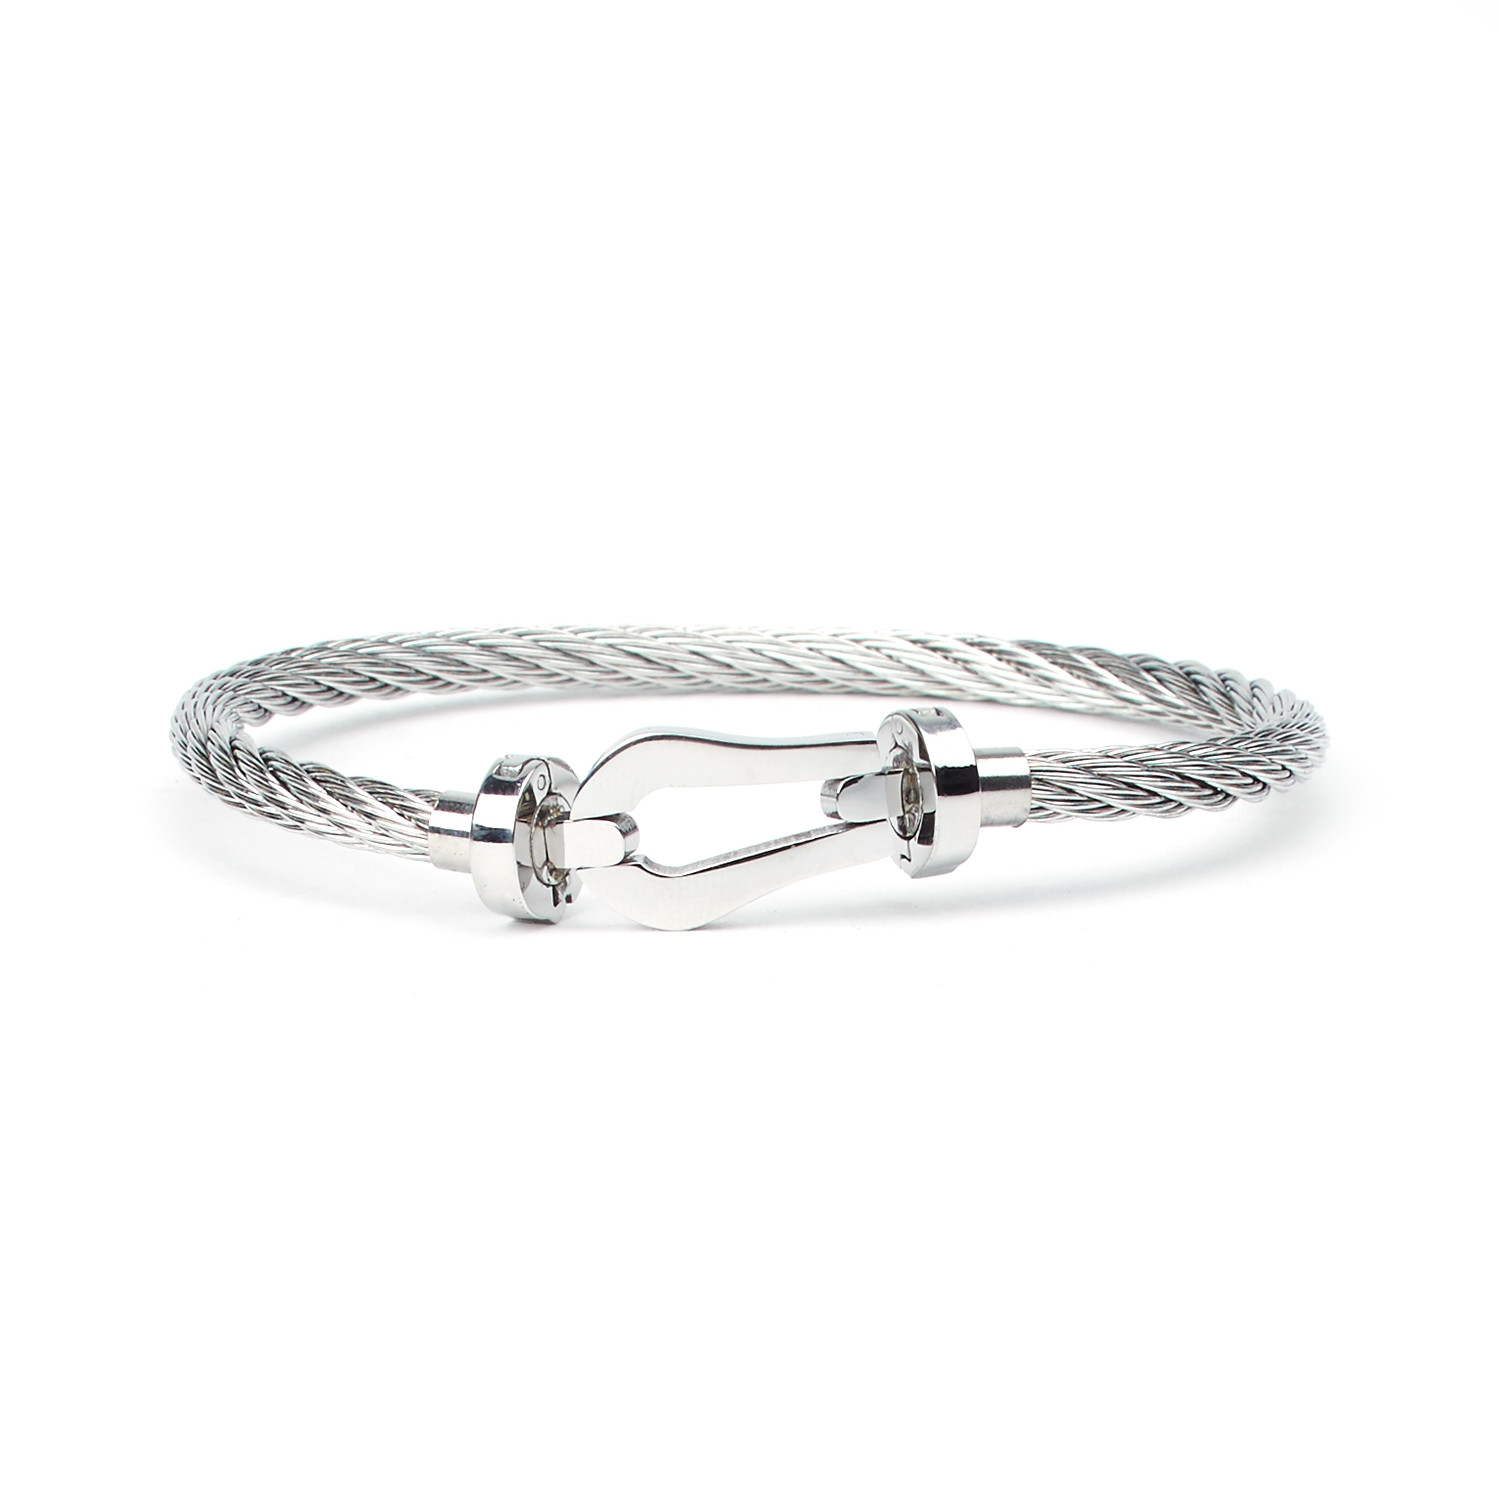 Milas Stainless Steel Cable Bracelet